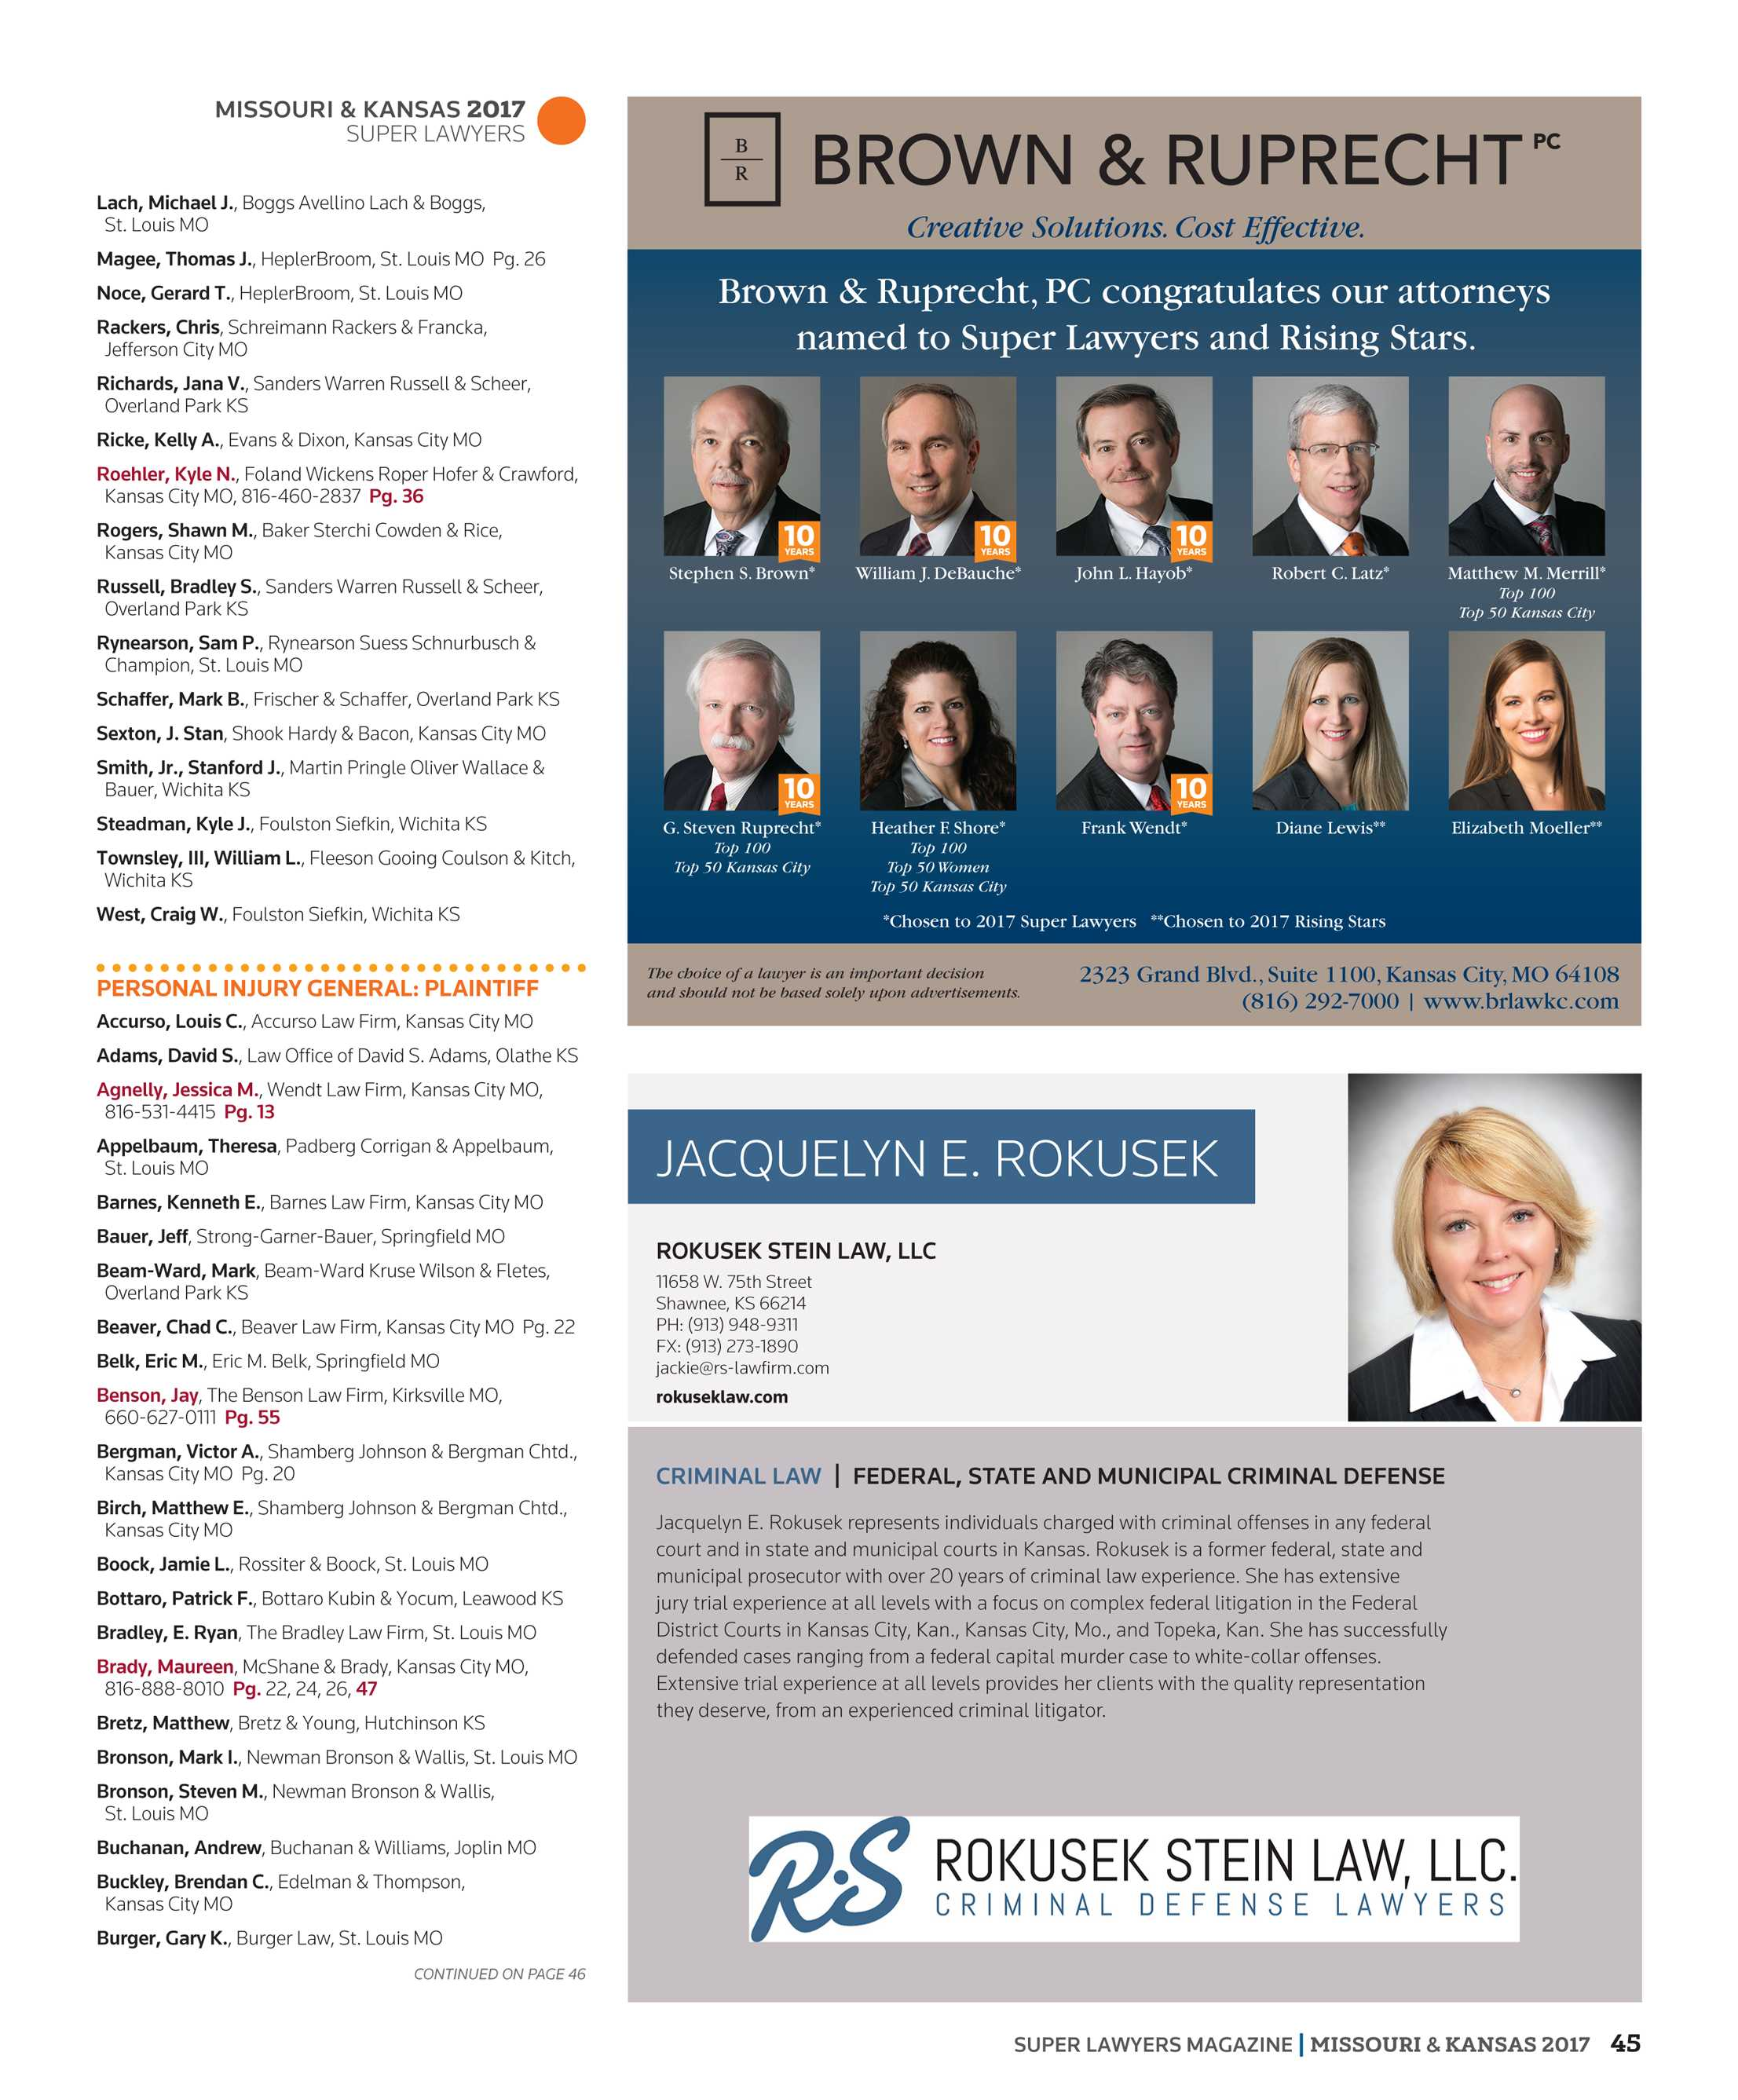 Super Lawyers - Missouri and Kansas 2017 - page 45